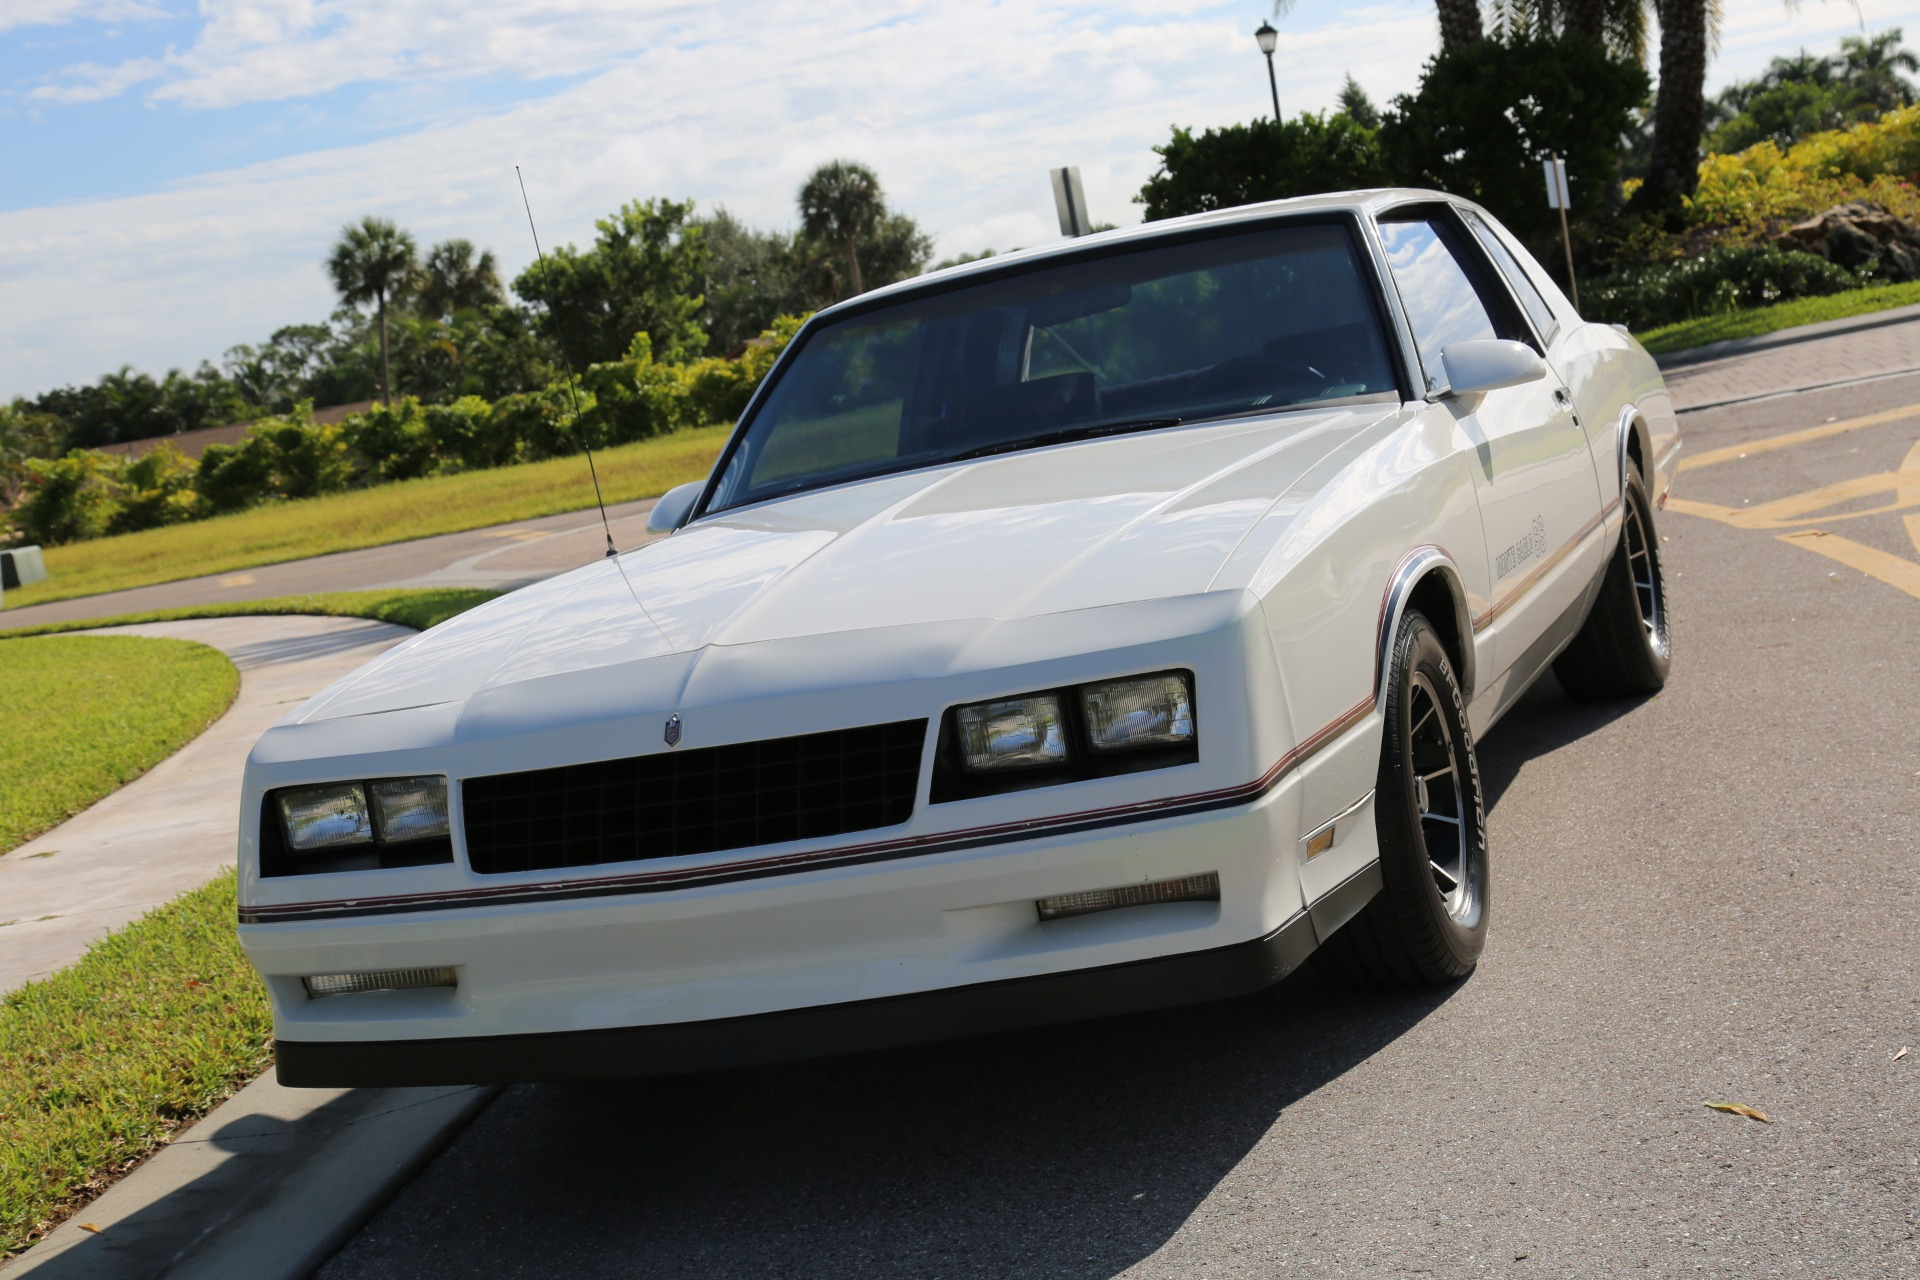 Used 1986 Chevrolet Monte Carlo SS Aero for sale $13,000 at Muscle Cars for Sale Inc. in Fort Myers FL 33912 8